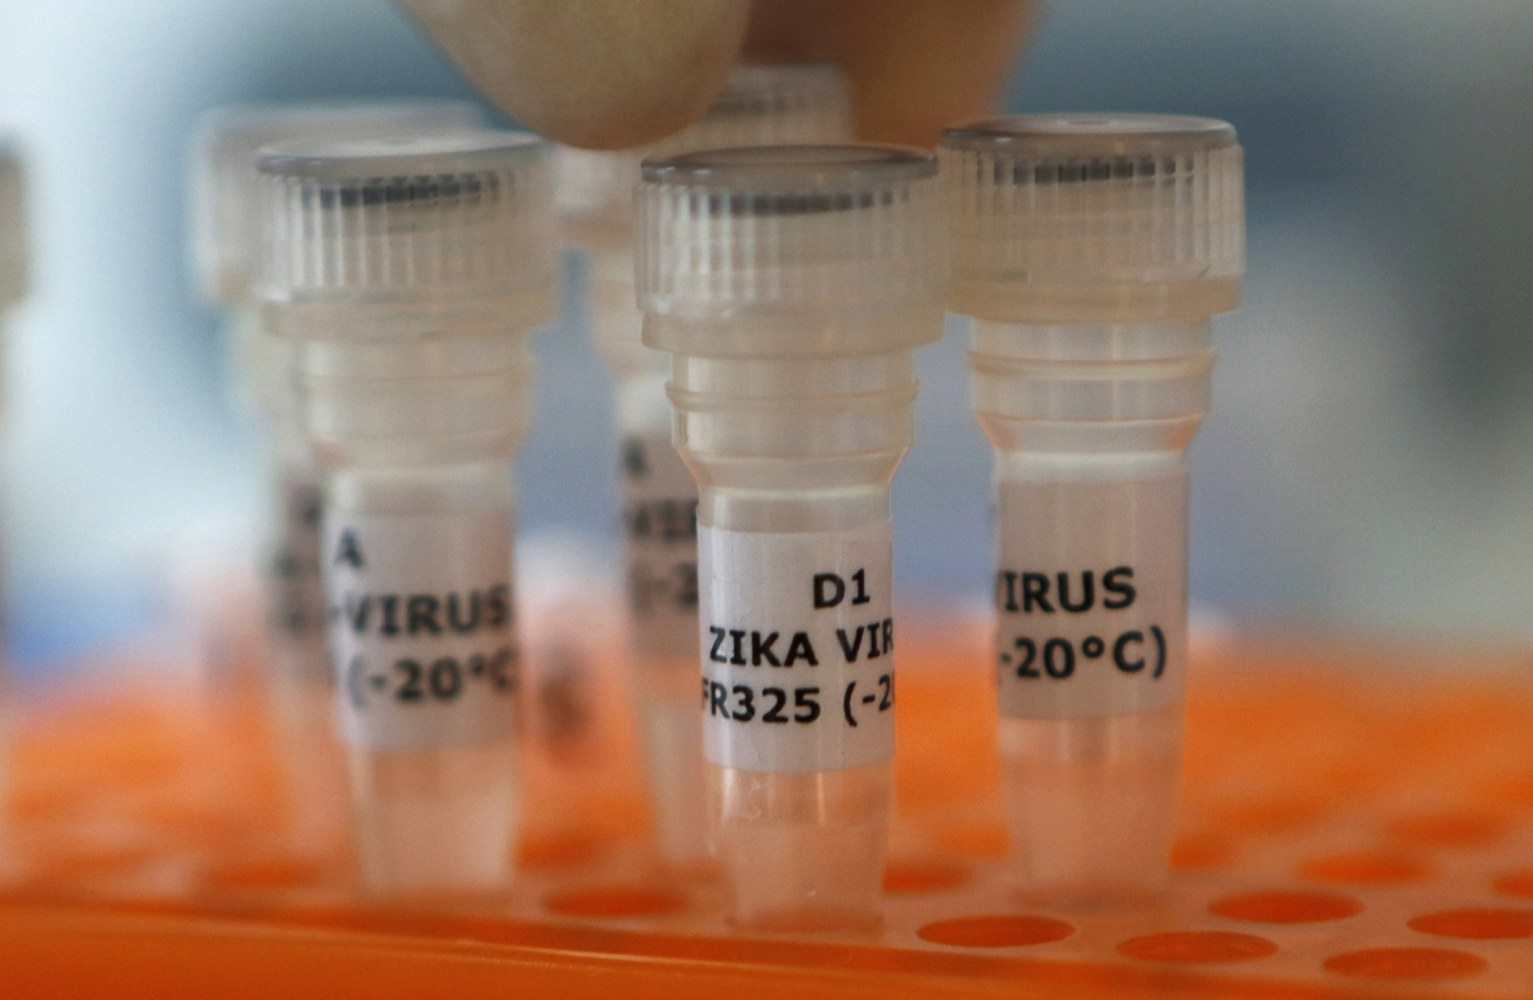 Zika risk went beyond Florida's Miami-Dade County